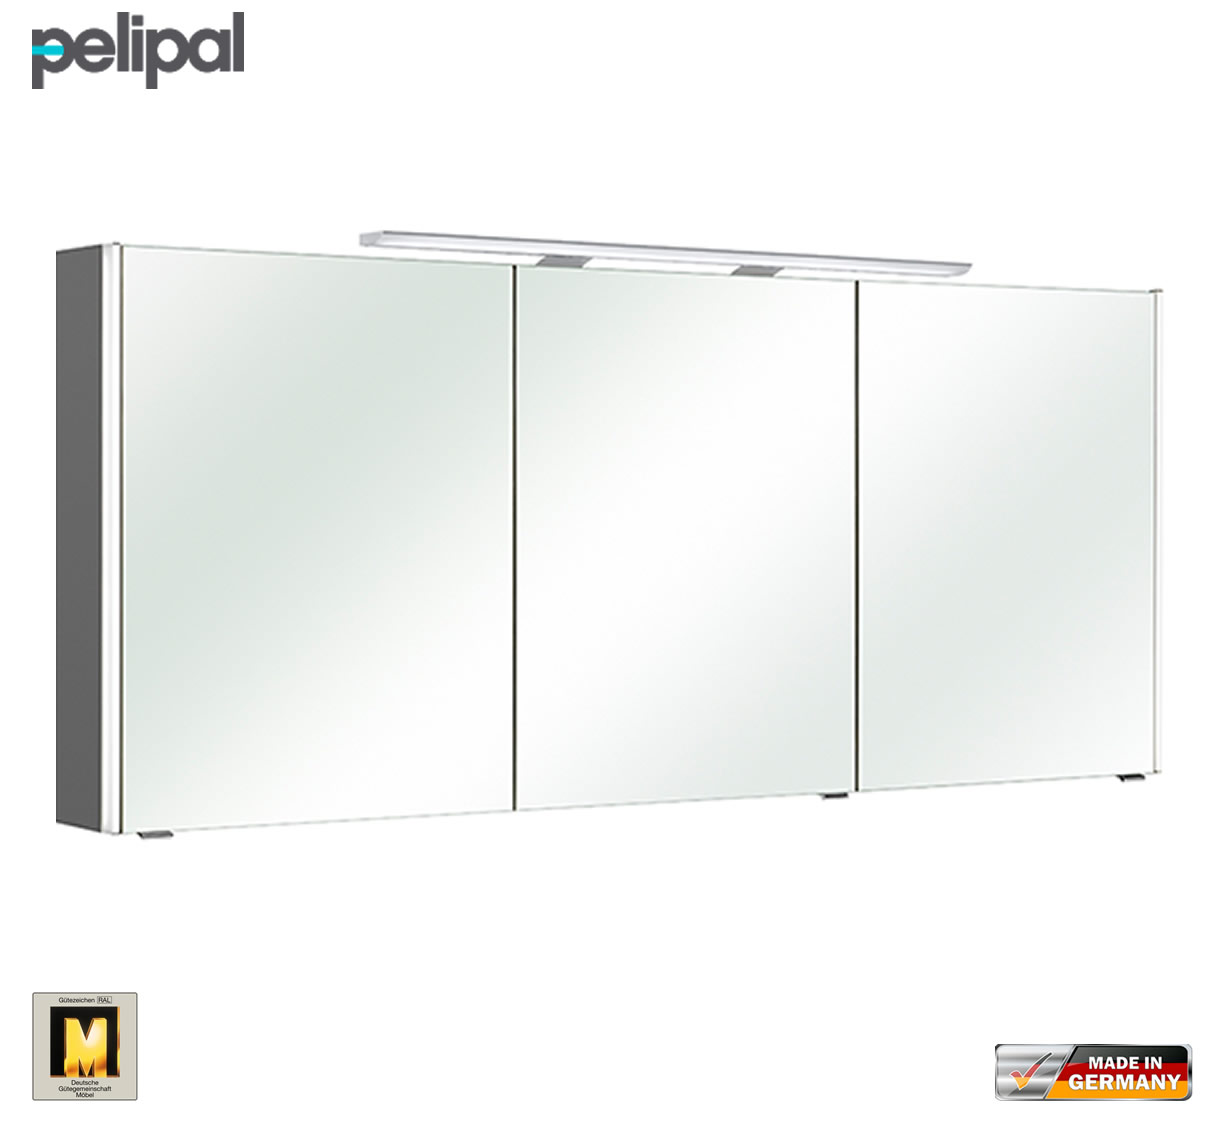 pelipal neutraler spiegelschrank s10 ledplus 167 cm mit led aufbauleuchte impulsbad. Black Bedroom Furniture Sets. Home Design Ideas